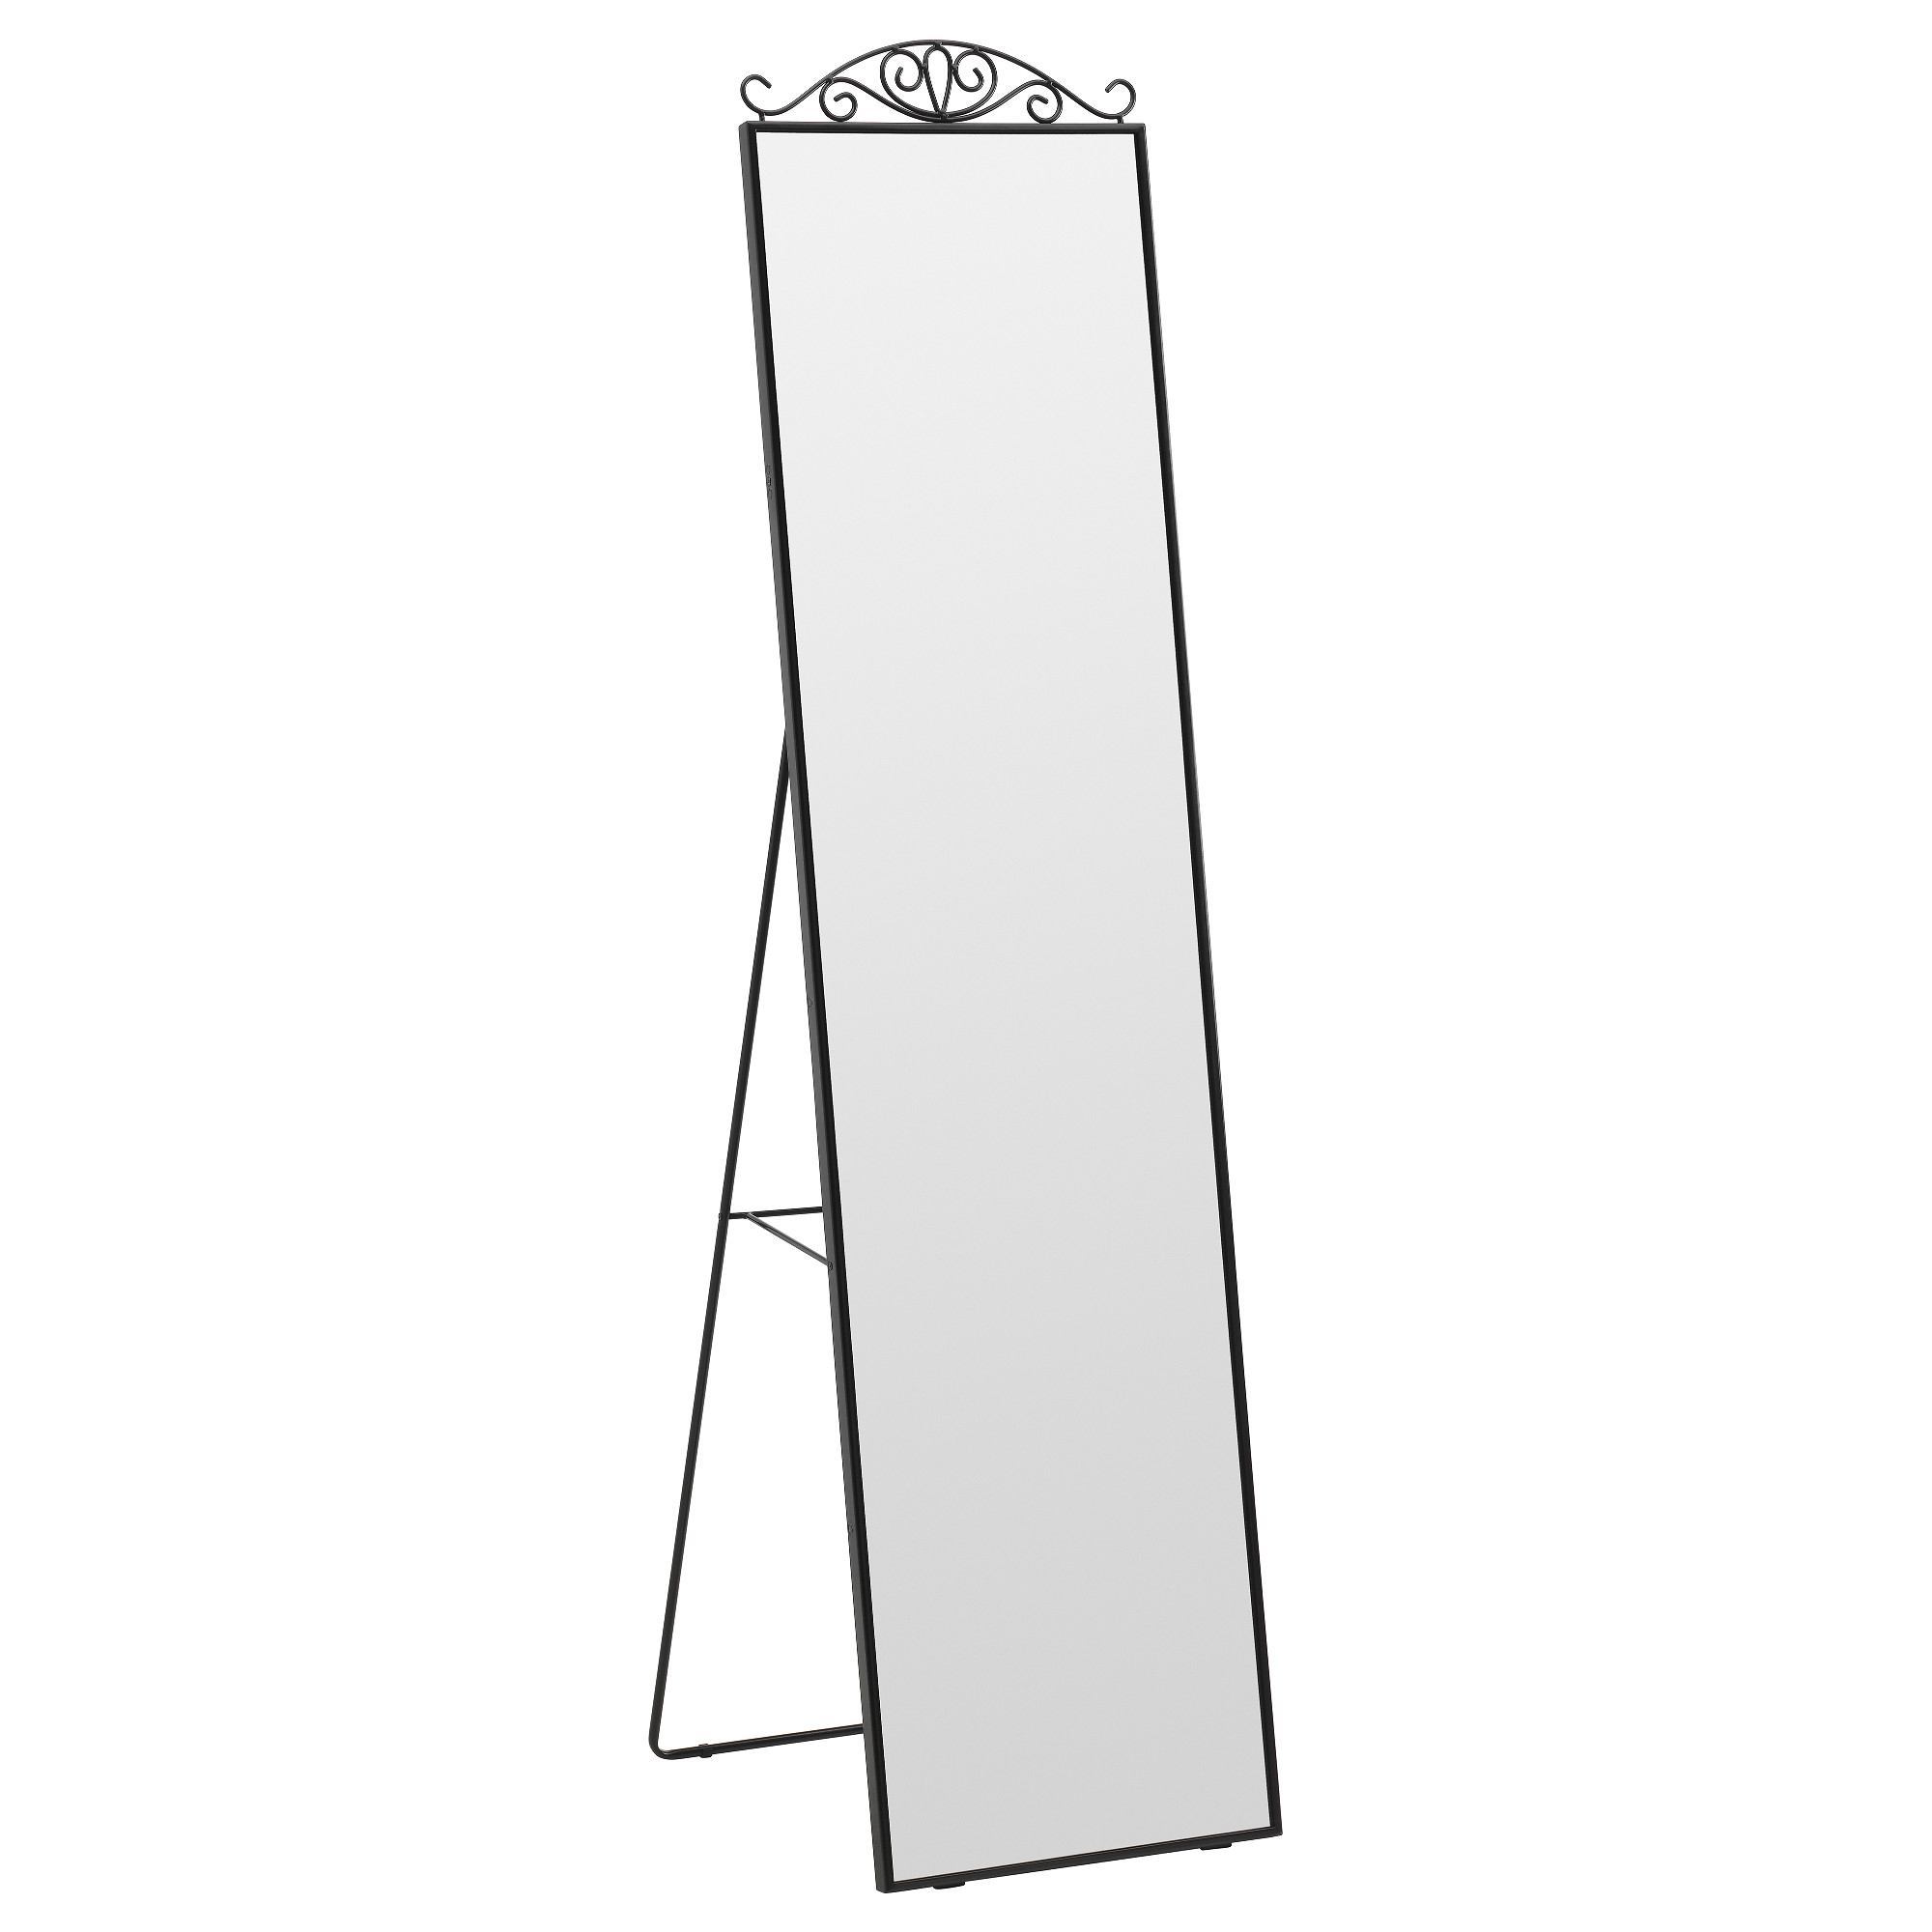 Mirrors Standing Ikea Wavy Large Floor Mirror Decoration For Most Popular Ikea Oval Wall Mirrors (View 15 of 20)